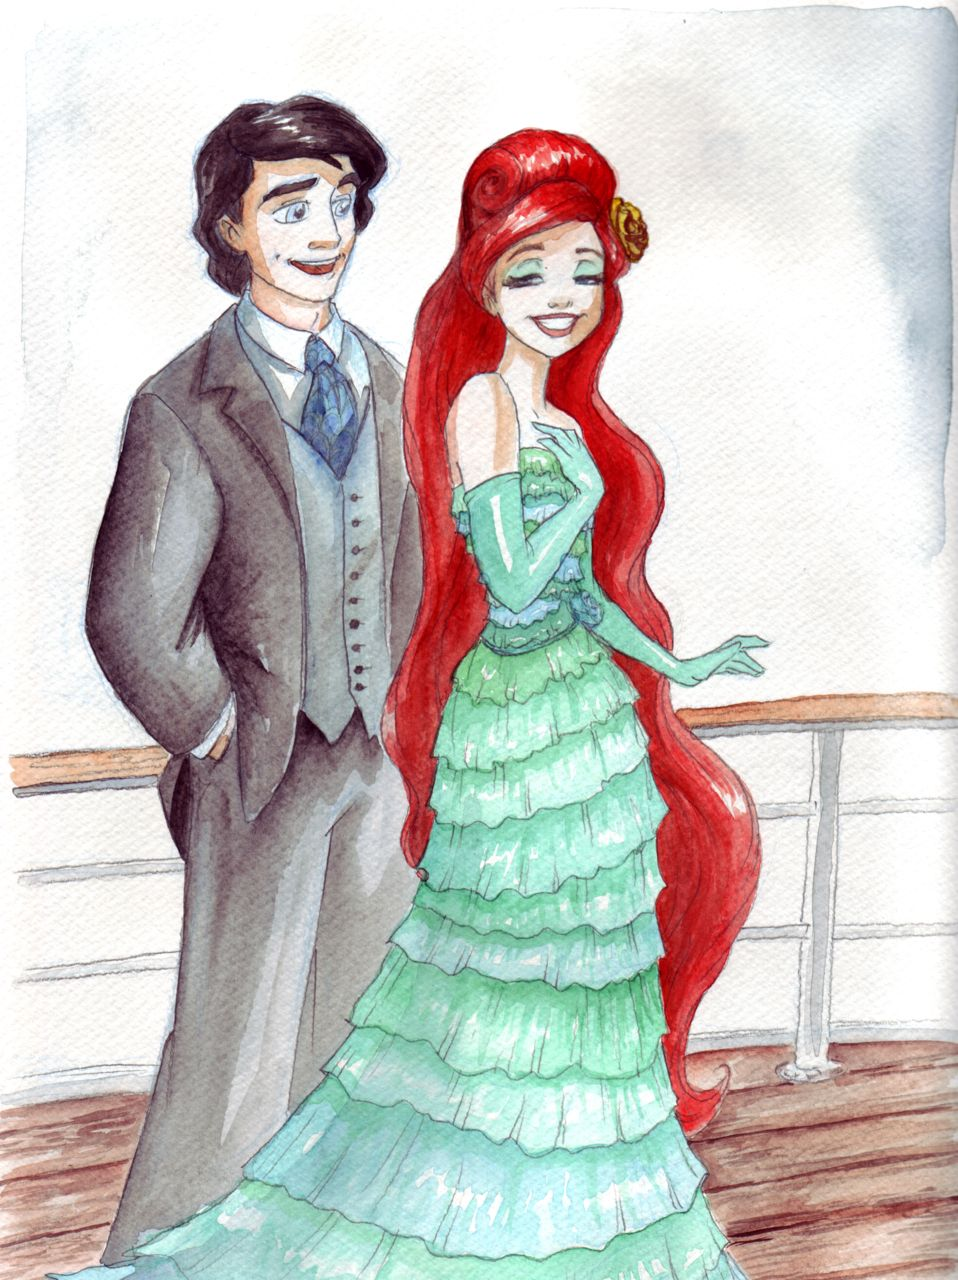 Ariel and her prince